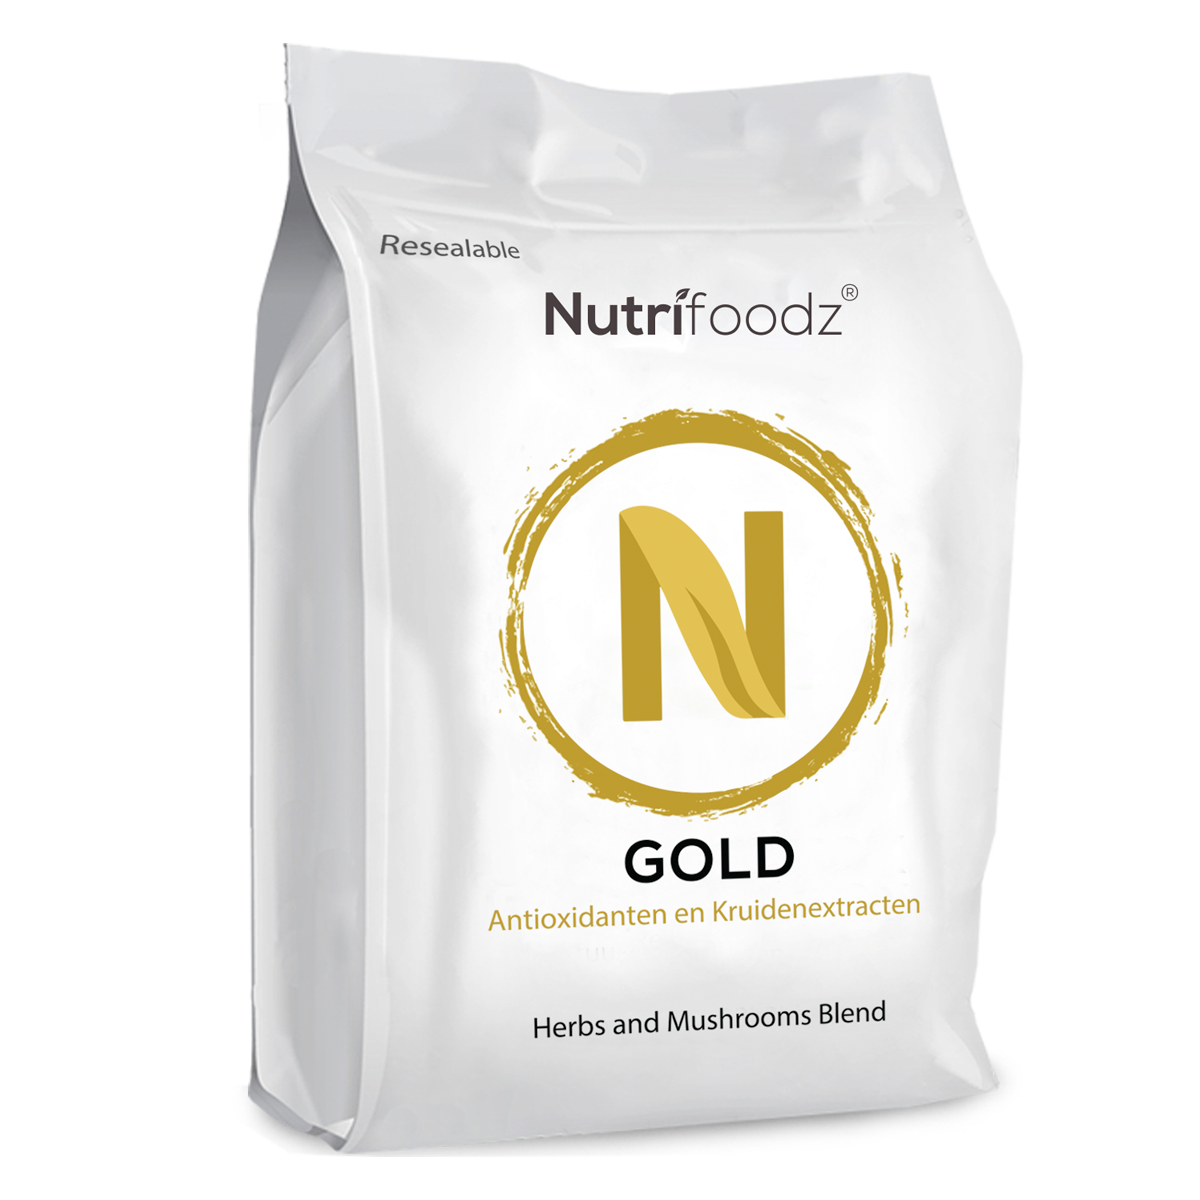 Nutrifoodz Gold - 3 Pack (15% korting) nutrition